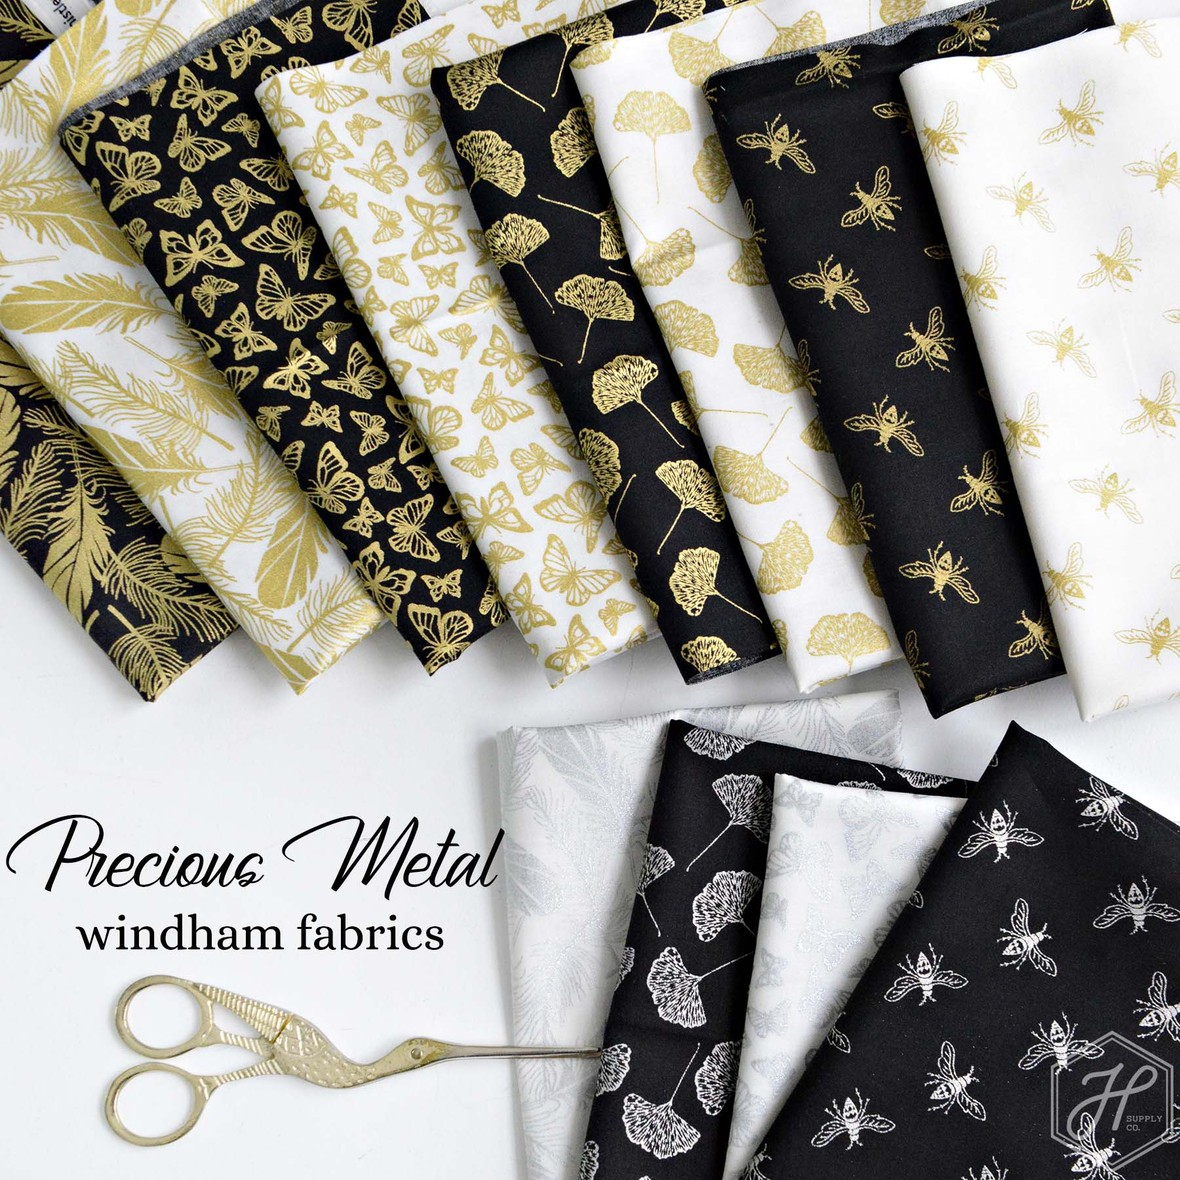 Precious Metal Fabric Windham at Hawthorne Supply Co